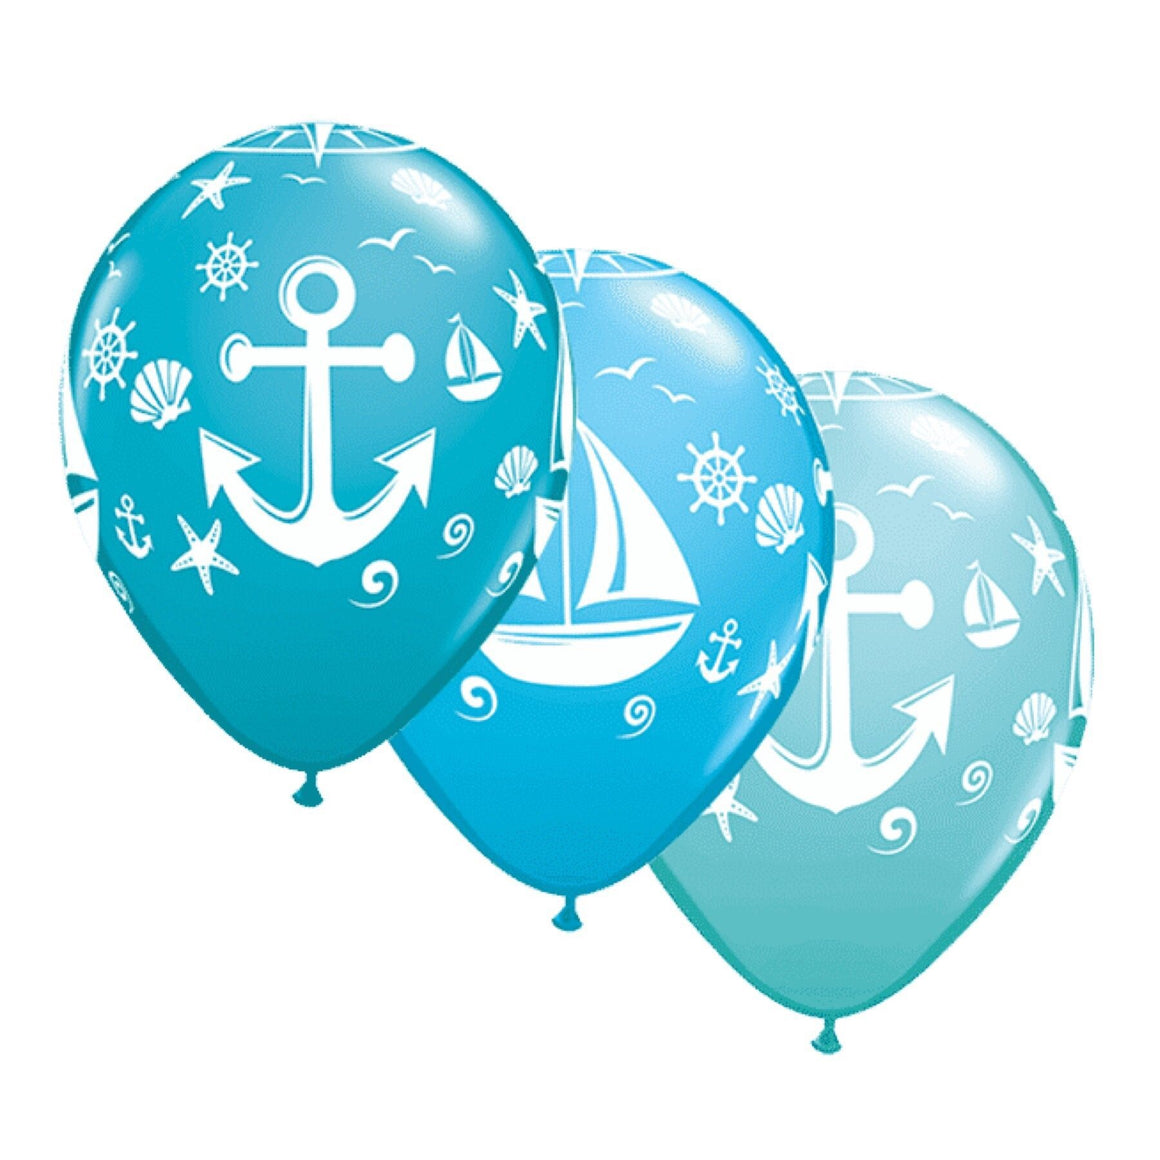 "BALLOON BAR - SEA LIFE NAUTICAL 11"", Balloons, QUALATEX - Bon + Co. Party Studio"